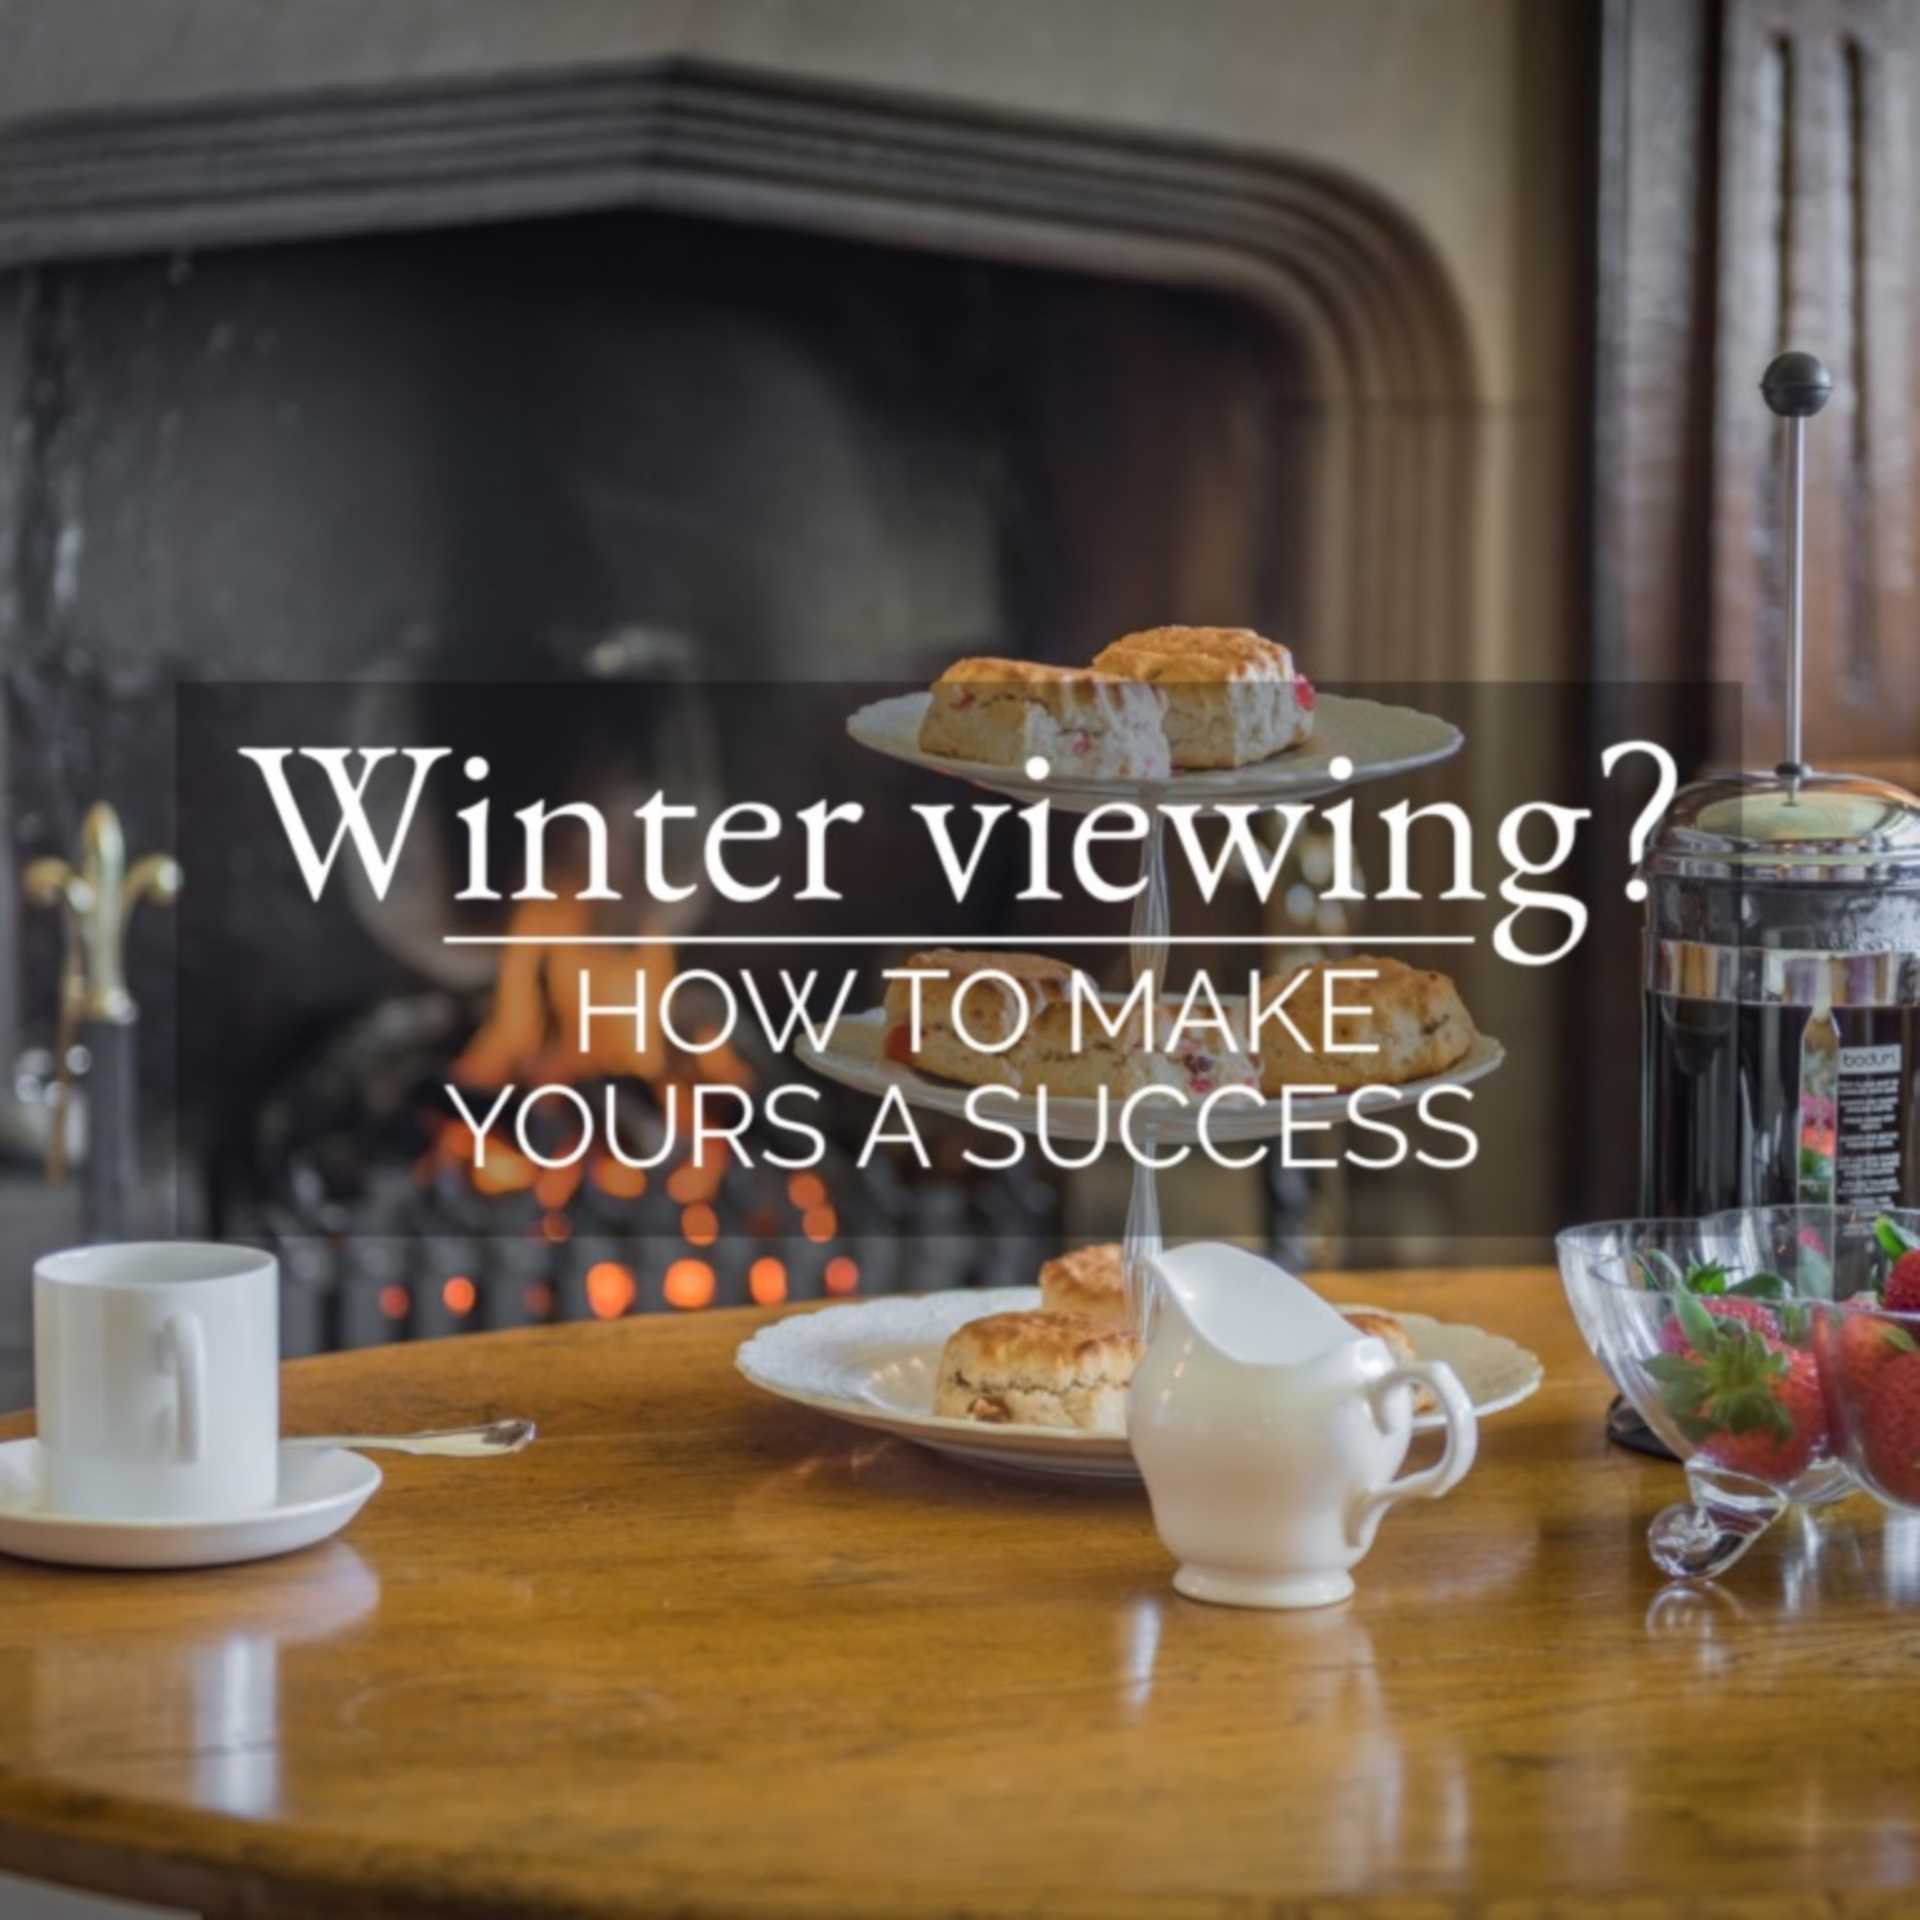 Winter Viewing?